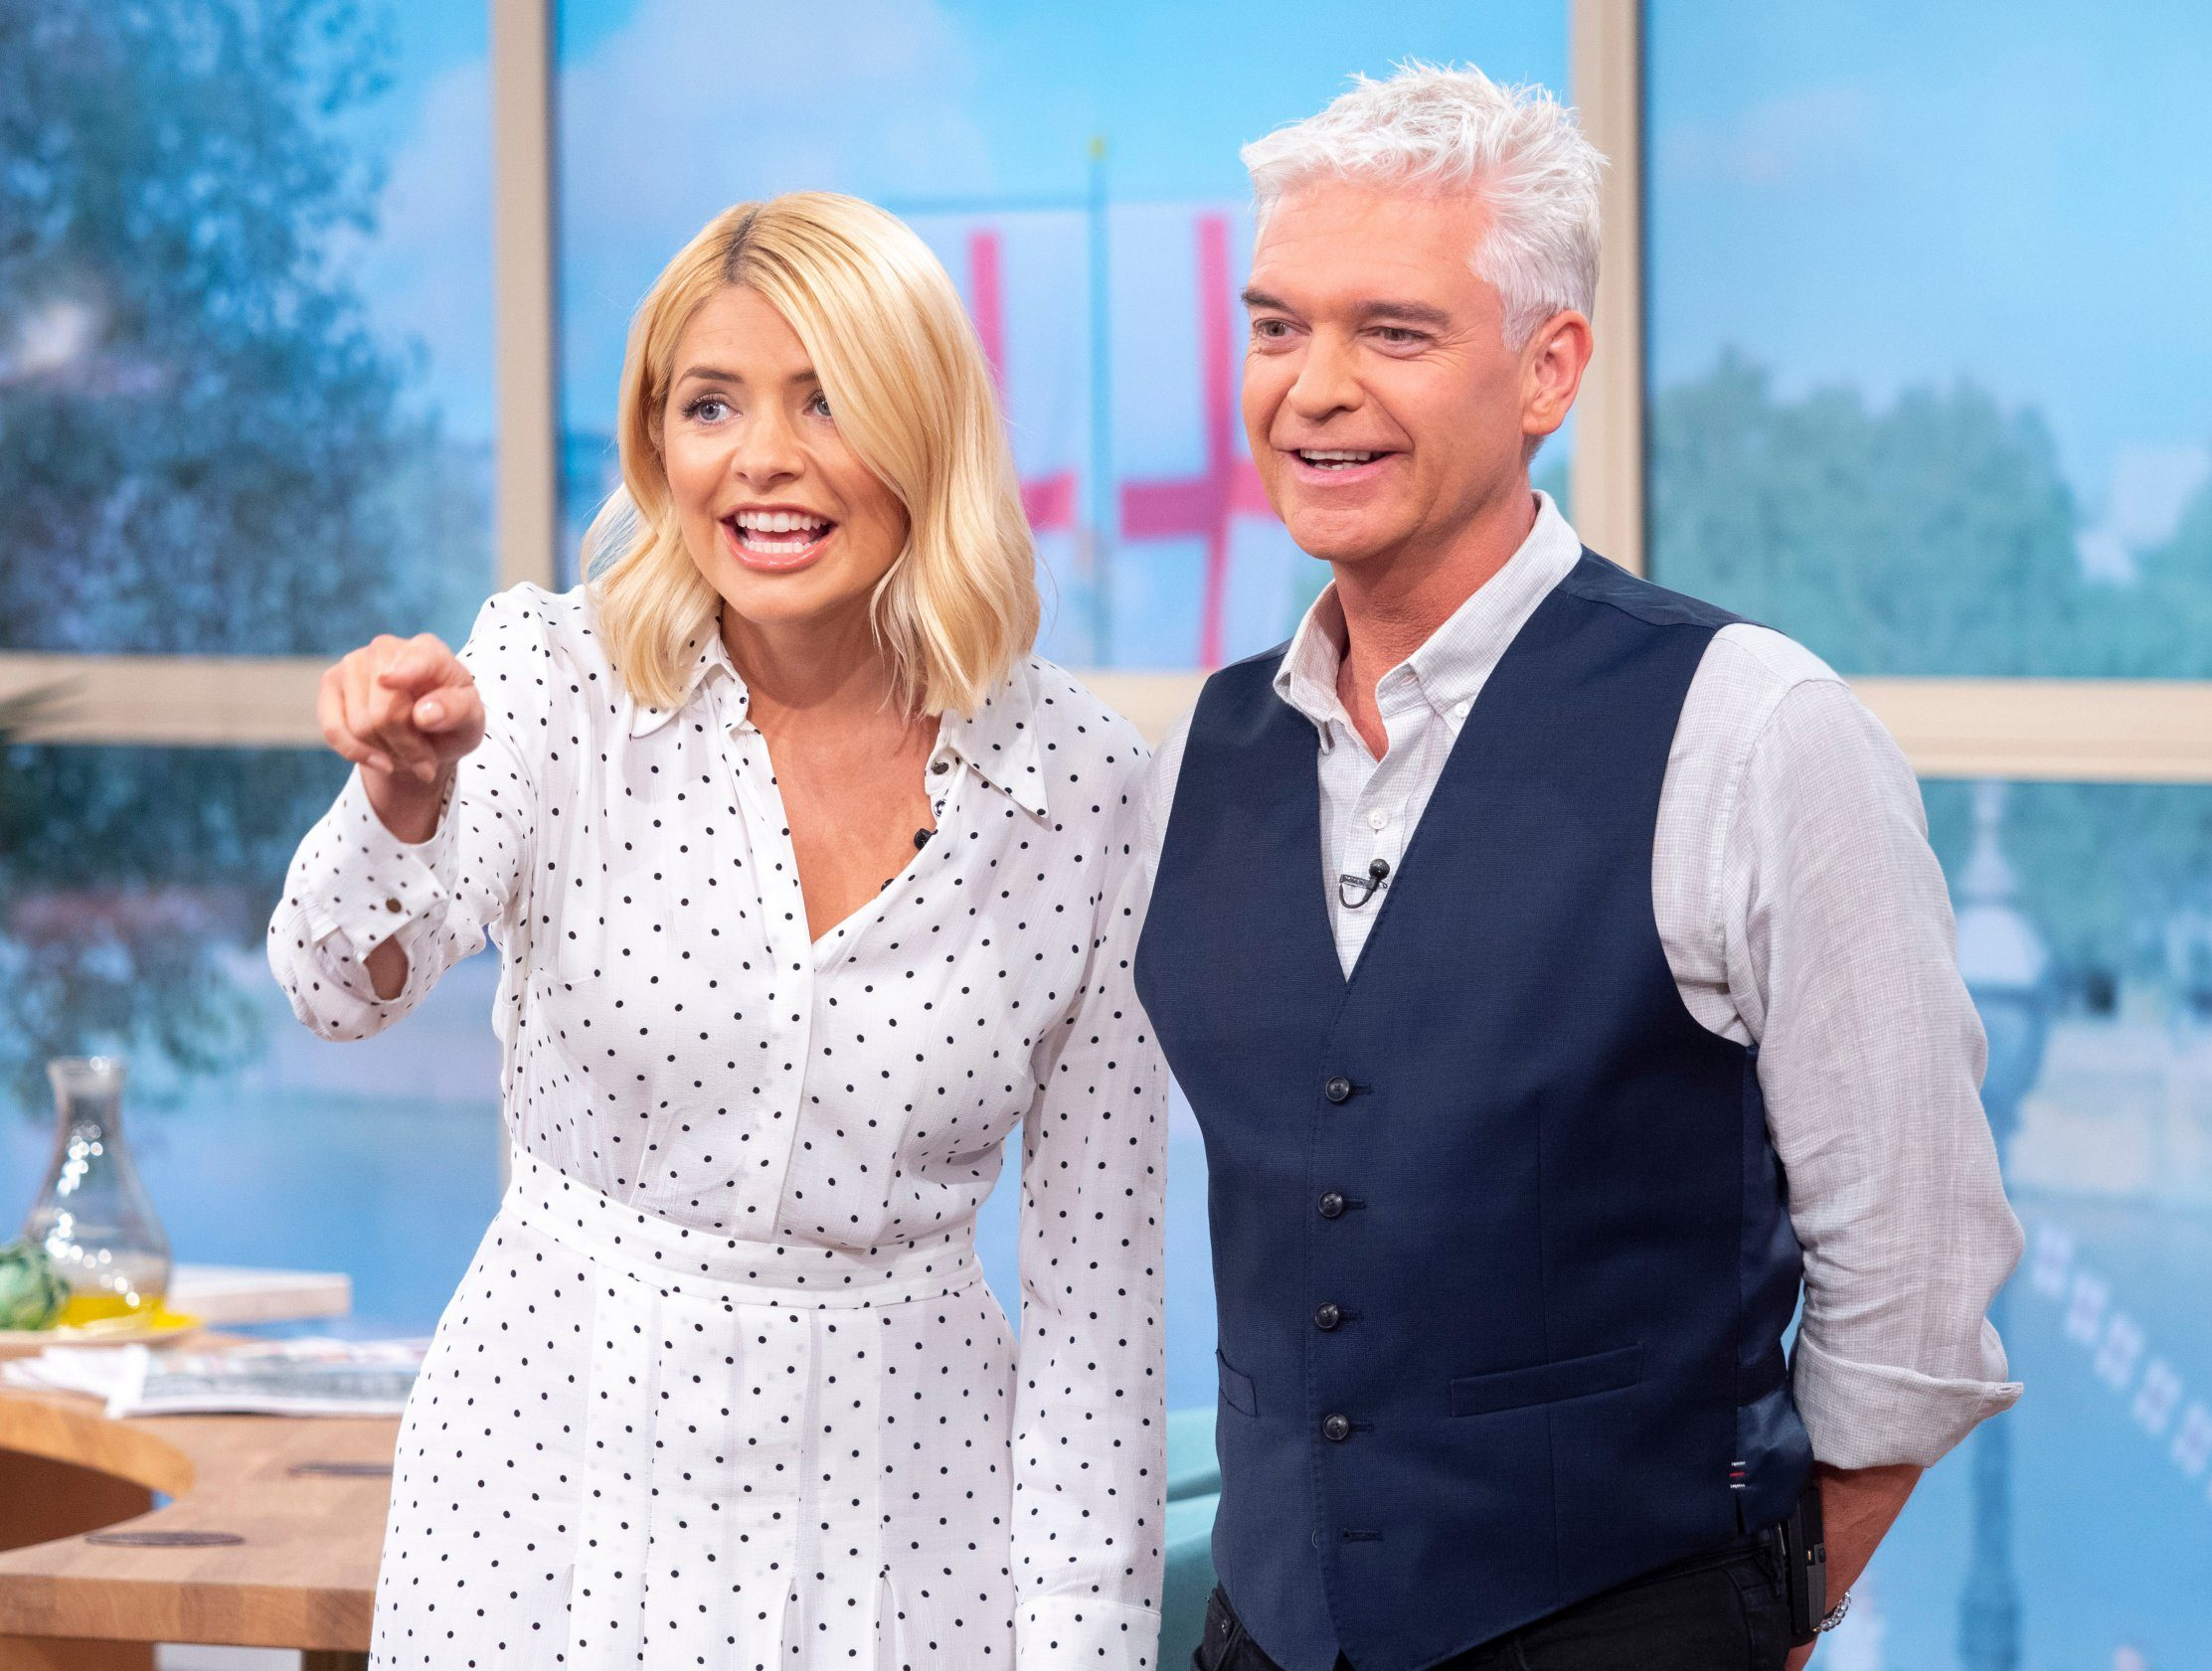 EDITORIAL USE ONLY. NO MERCHANDISING Mandatory Credit: Photo by Ken McKay/ITV/REX/Shutterstock (9754663cf) Holly Willoughby and Phillip Schofield 'This Morning' TV show, London, UK - 11 Jul 2018 We?re getting you in the mood for tonight?s match and talking all things World Cup. We had a spare ticket so we?ve sent our This Morning receptionist Suzy out to Moscow to soak up the atmosphere. And Uri Geller is back to send some more positive energy into the atmosphere, we?ll even have some help from the actual winning ball used by England in the 1966 World Cup.